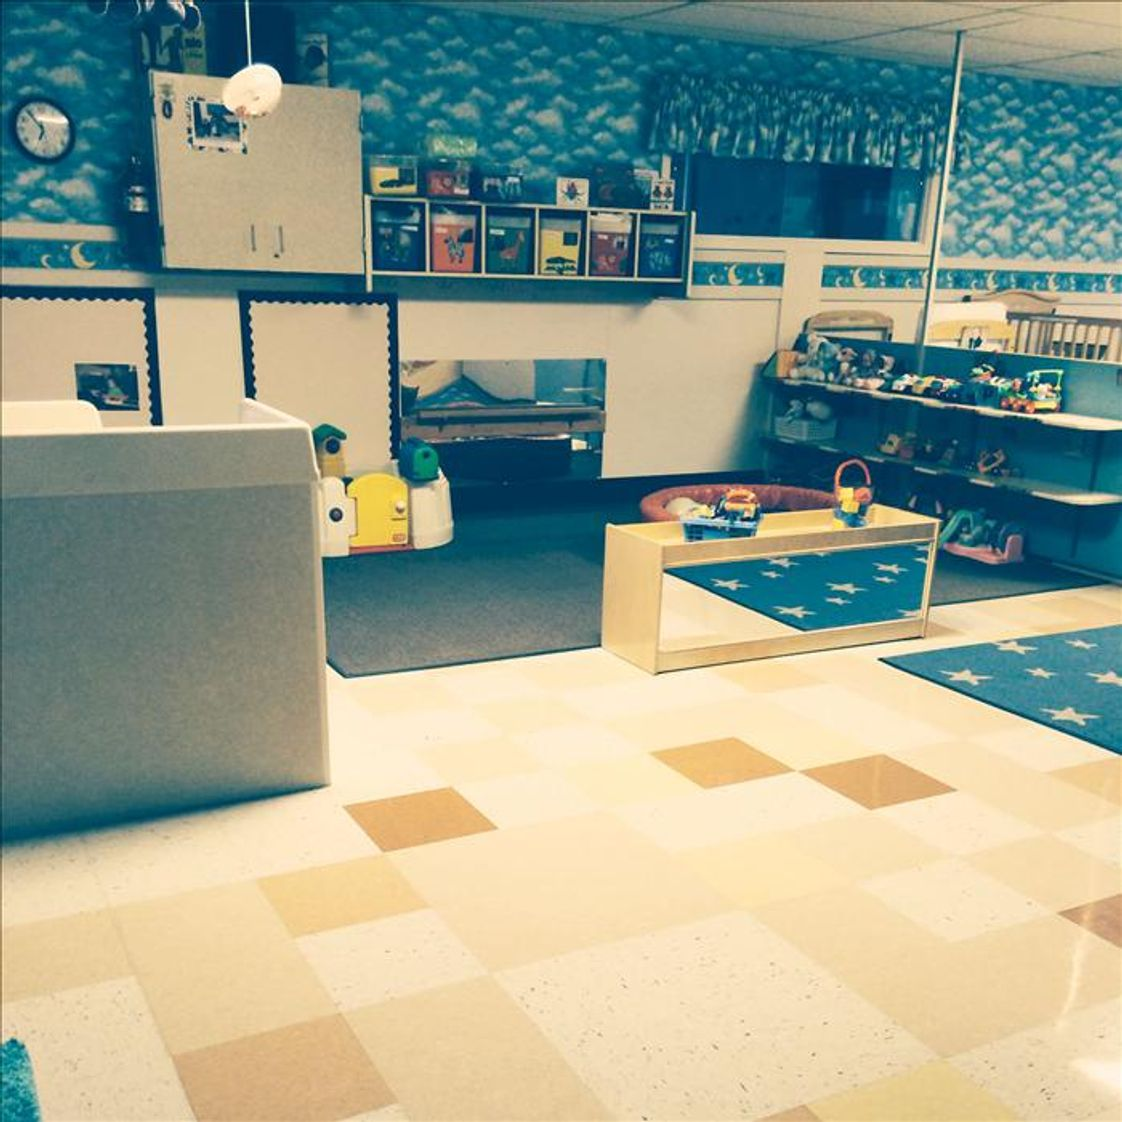 Derr Road KinderCare Photo #1 - Infant Classroom